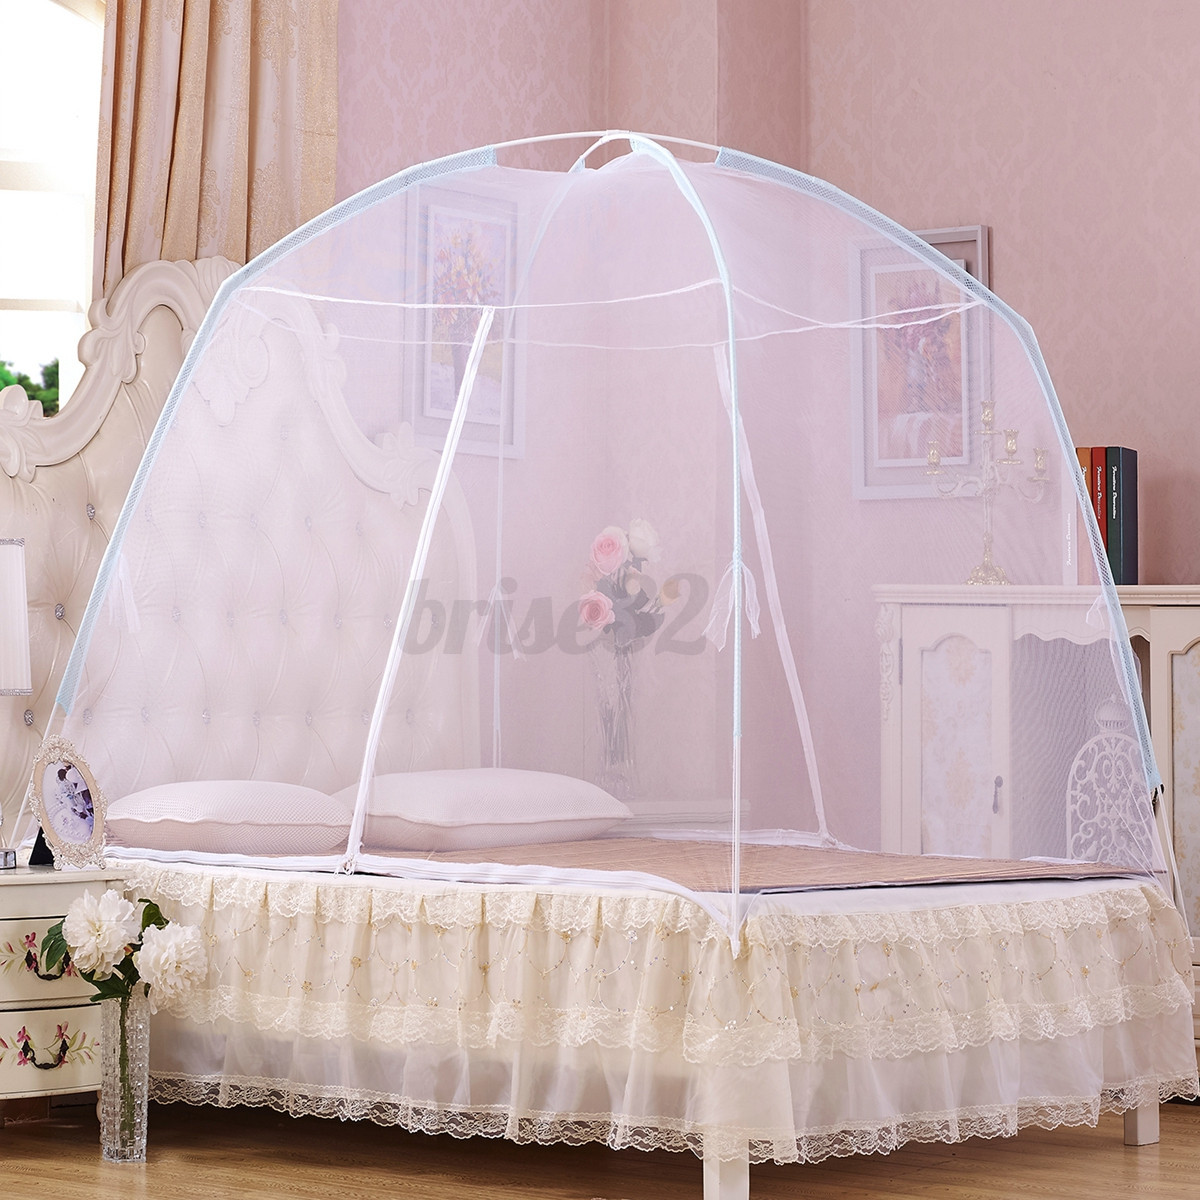 3 color portable hight qc bedding canopy mosquito net tent queen size for bed ebay. Black Bedroom Furniture Sets. Home Design Ideas